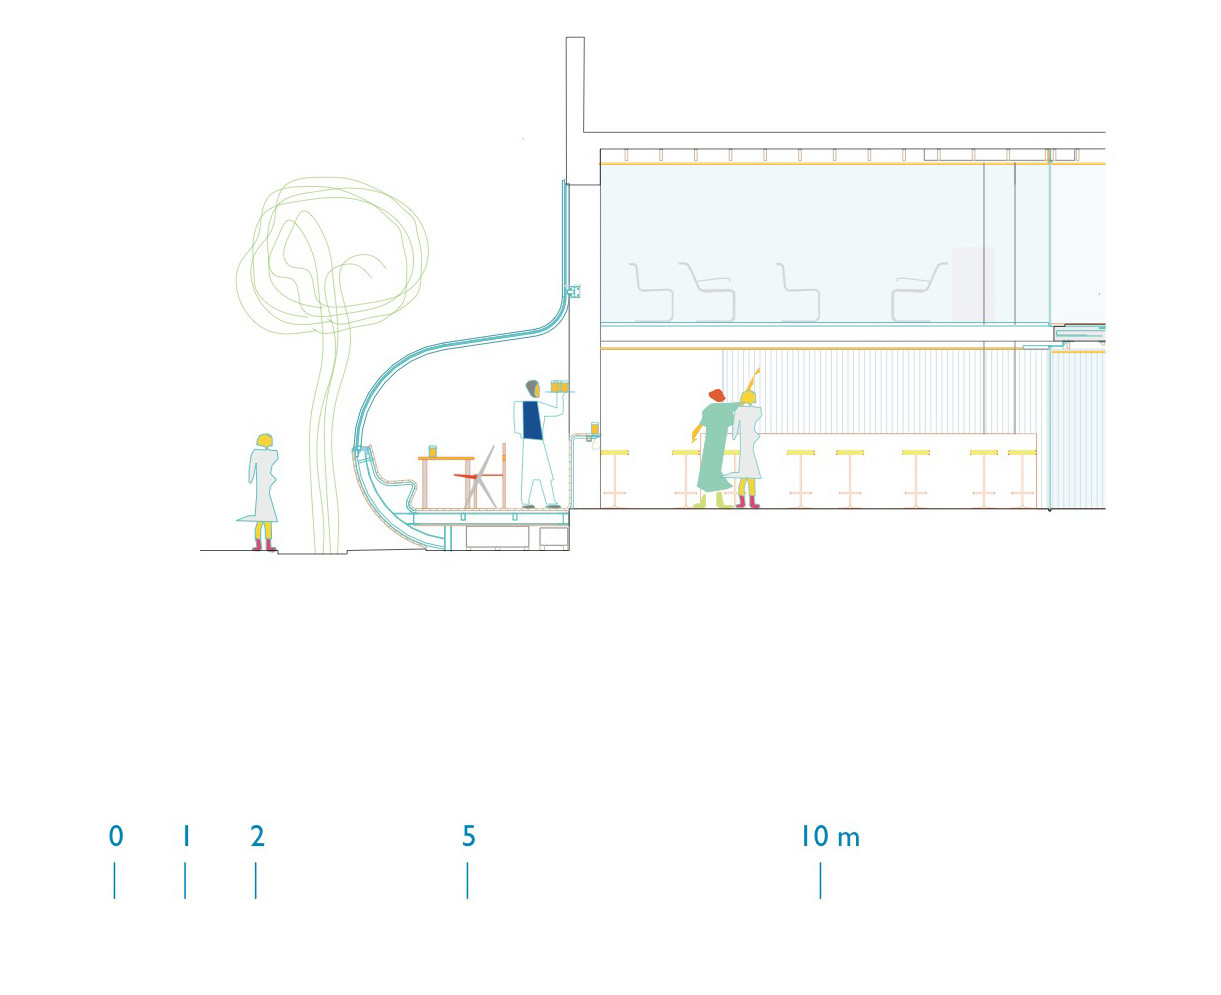 Tom Jerry Pobarvanke Genuardis Portal Picture in addition Sail Soler52 together with 3476 further Pen and ink as well Grace Farms. on architecture home